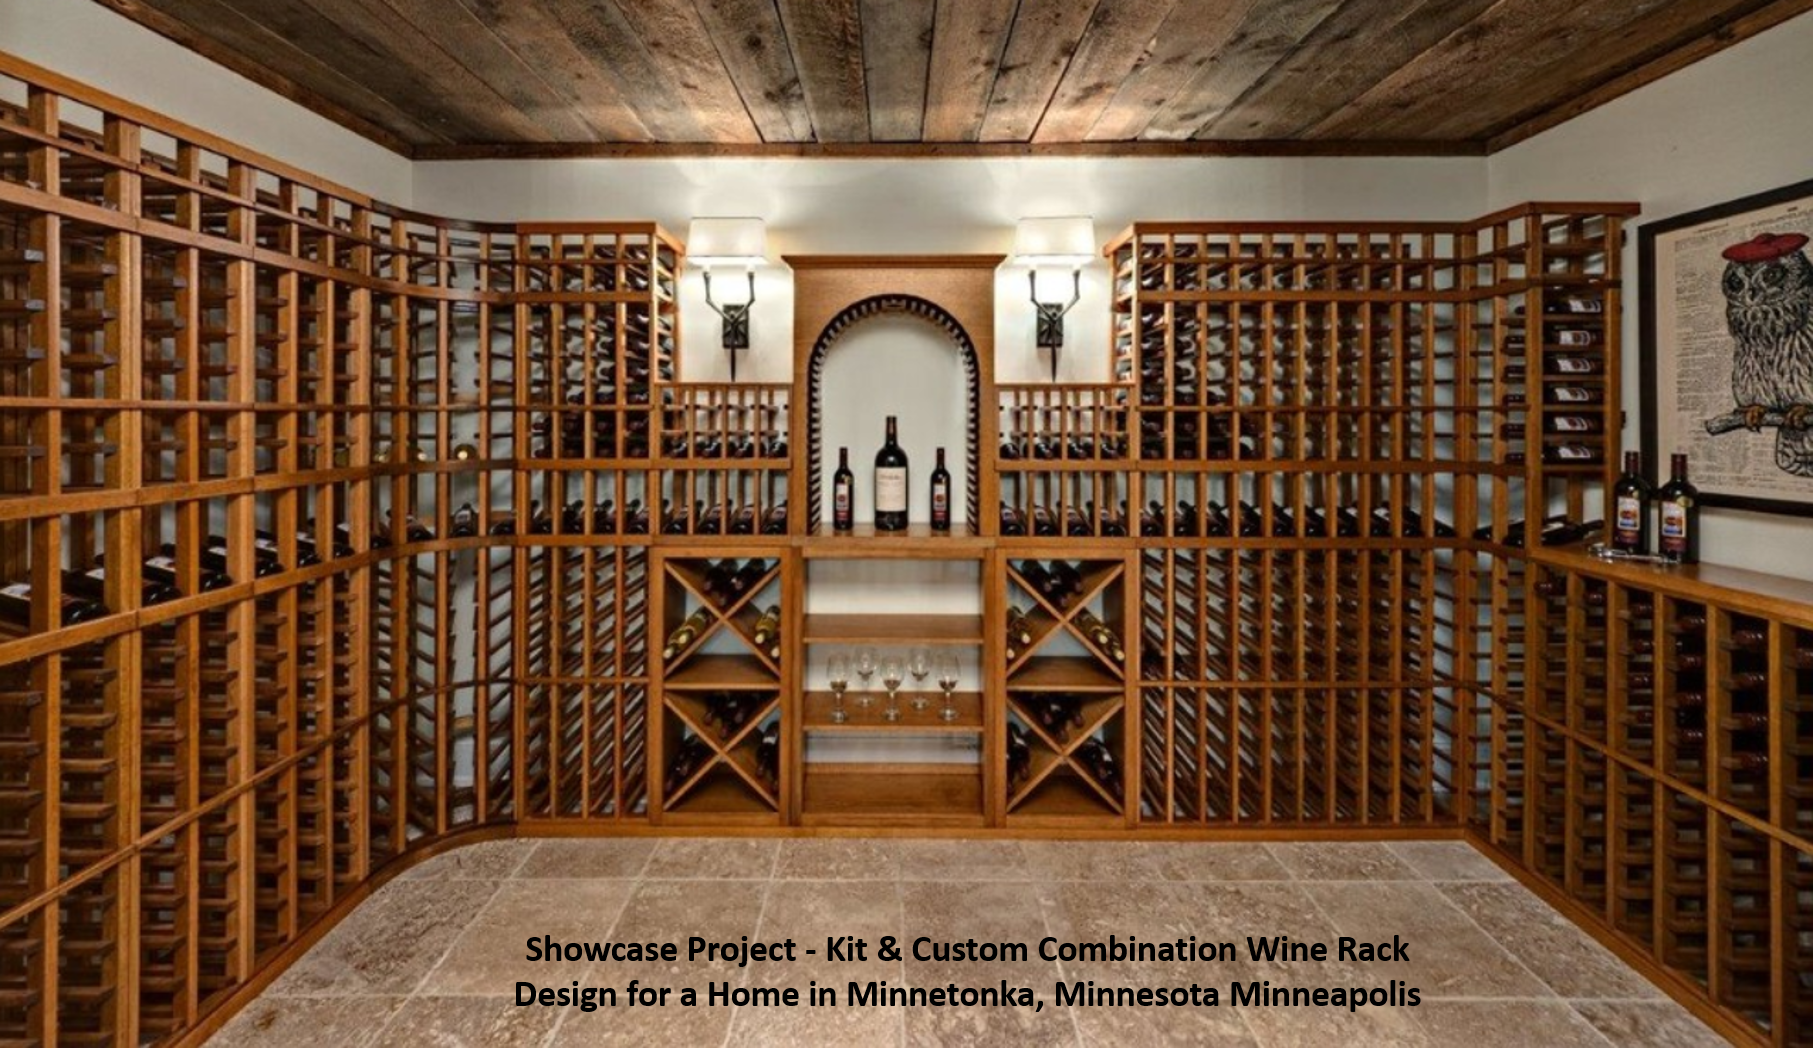 Minneapolis home wine cellar designs ideas Home wine cellar design